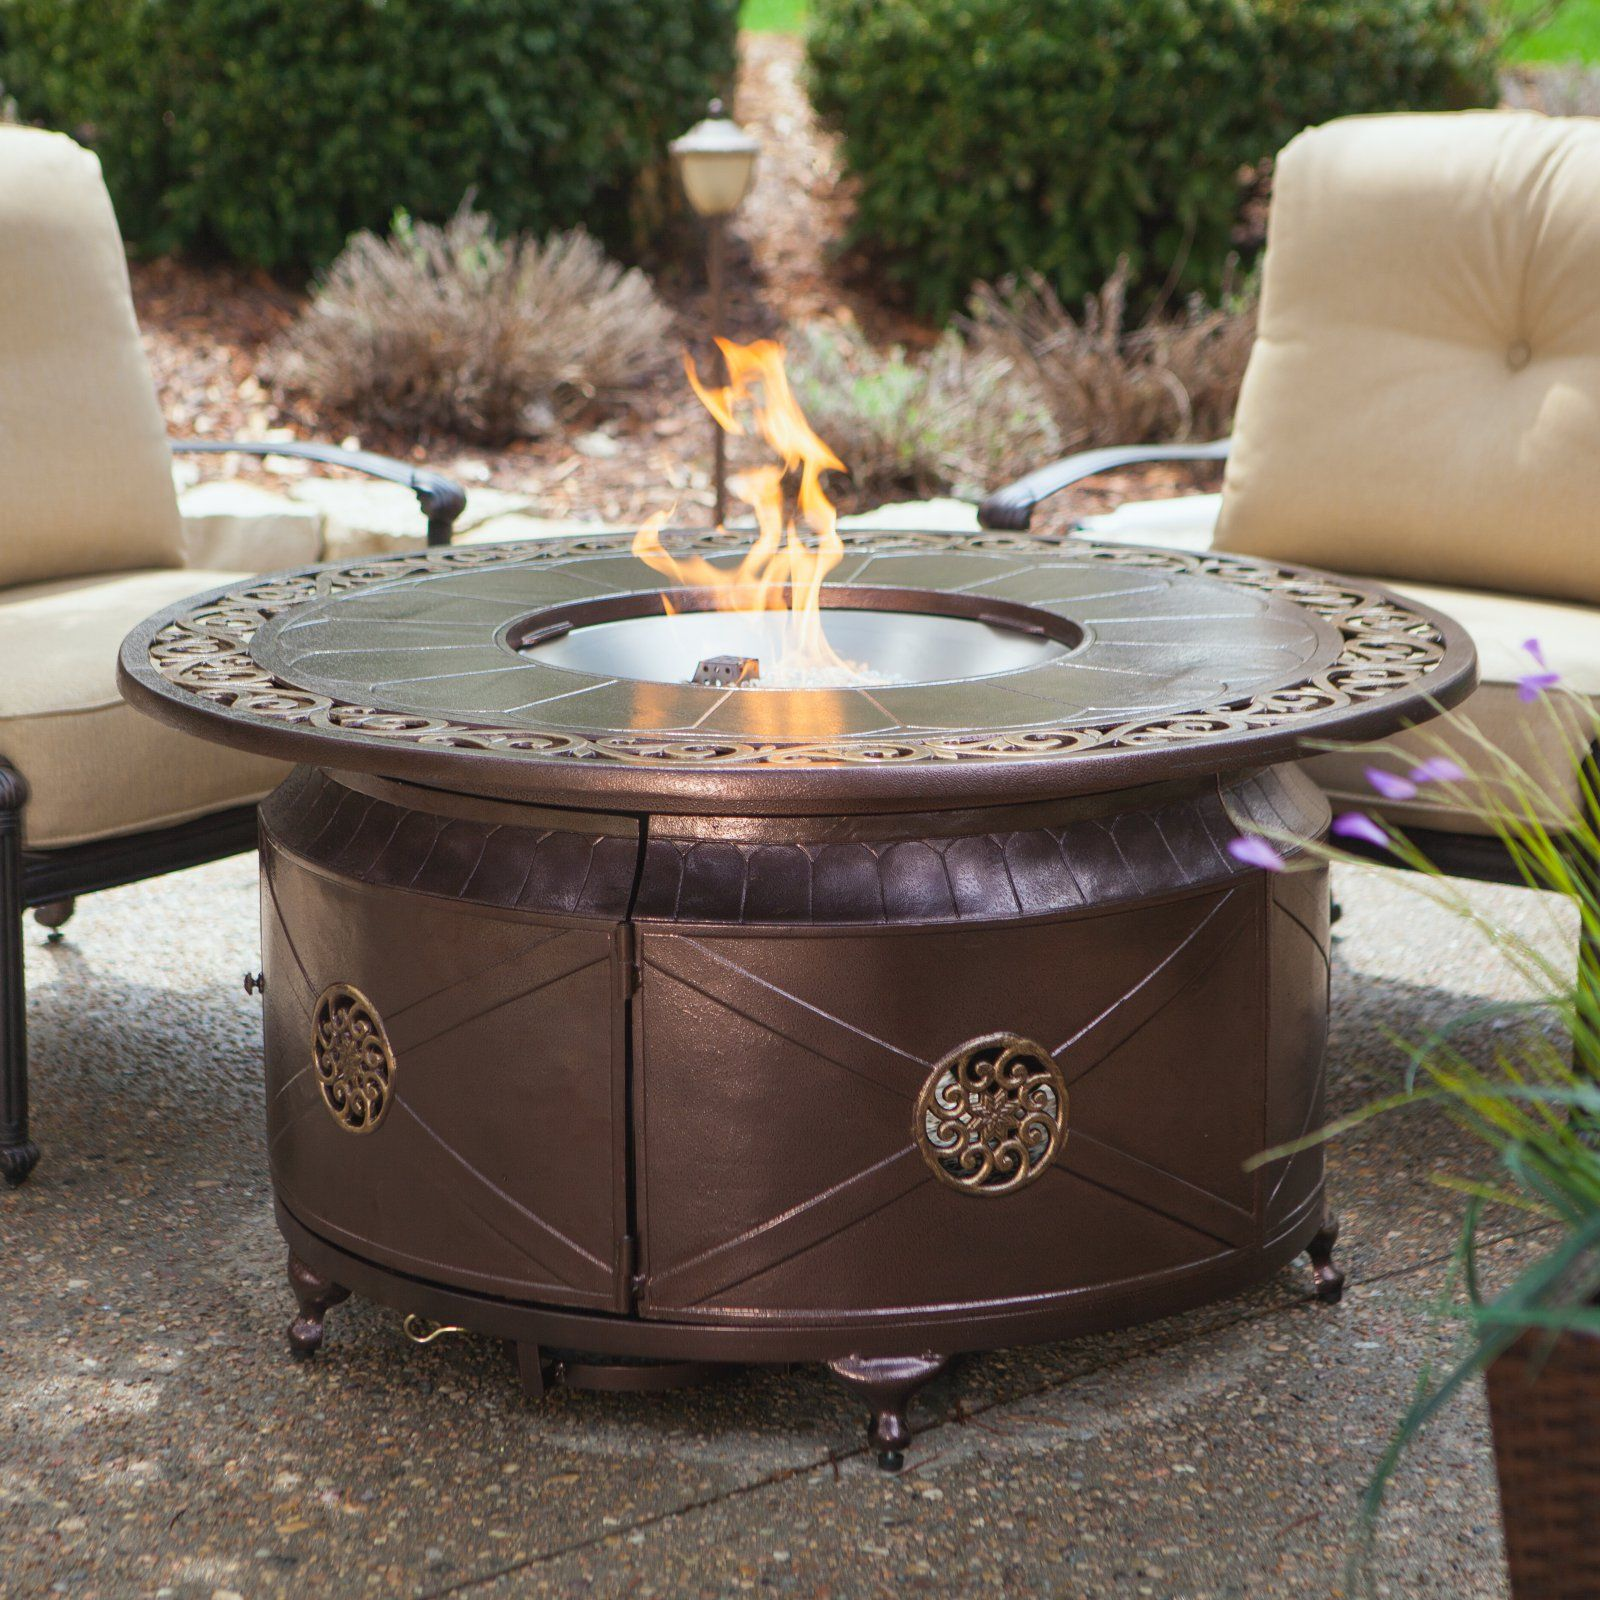 Patio Garden In 2020 Fire Pit Outdoor Fire Pit Table Outdoor Propane Fire Pit